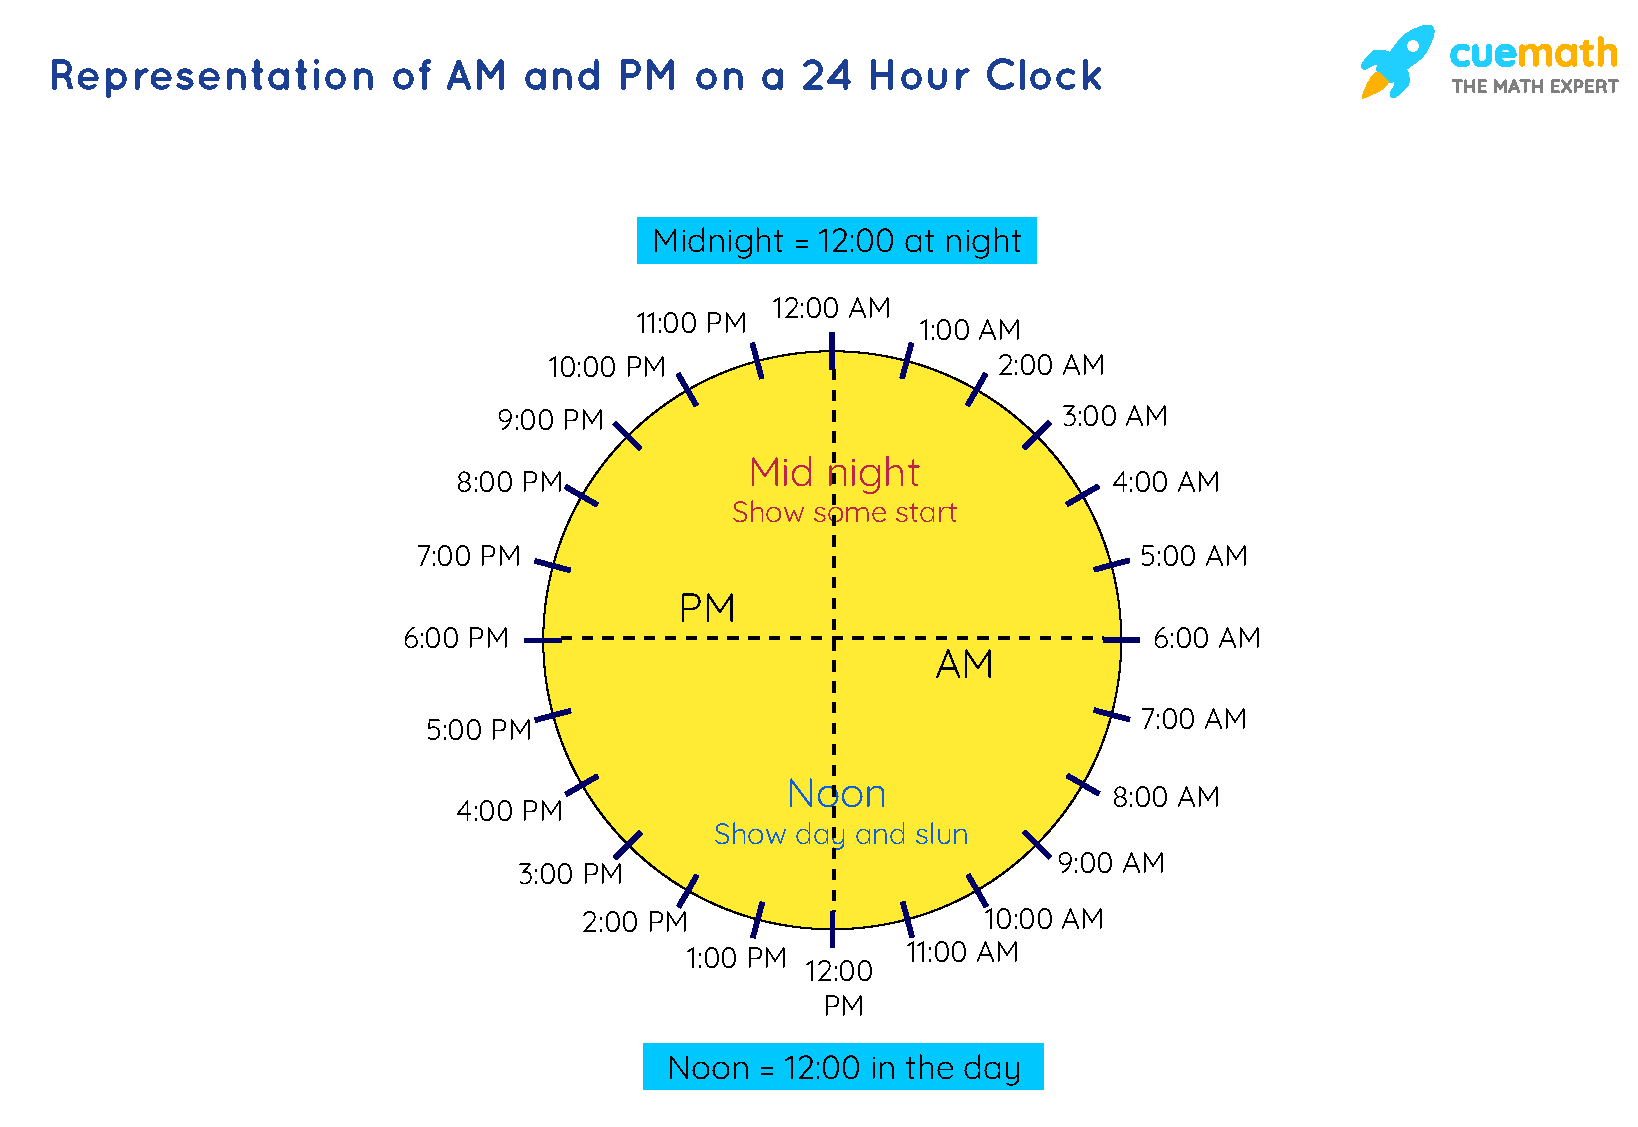 Representation of AM and PM on a 24 Hour Clock